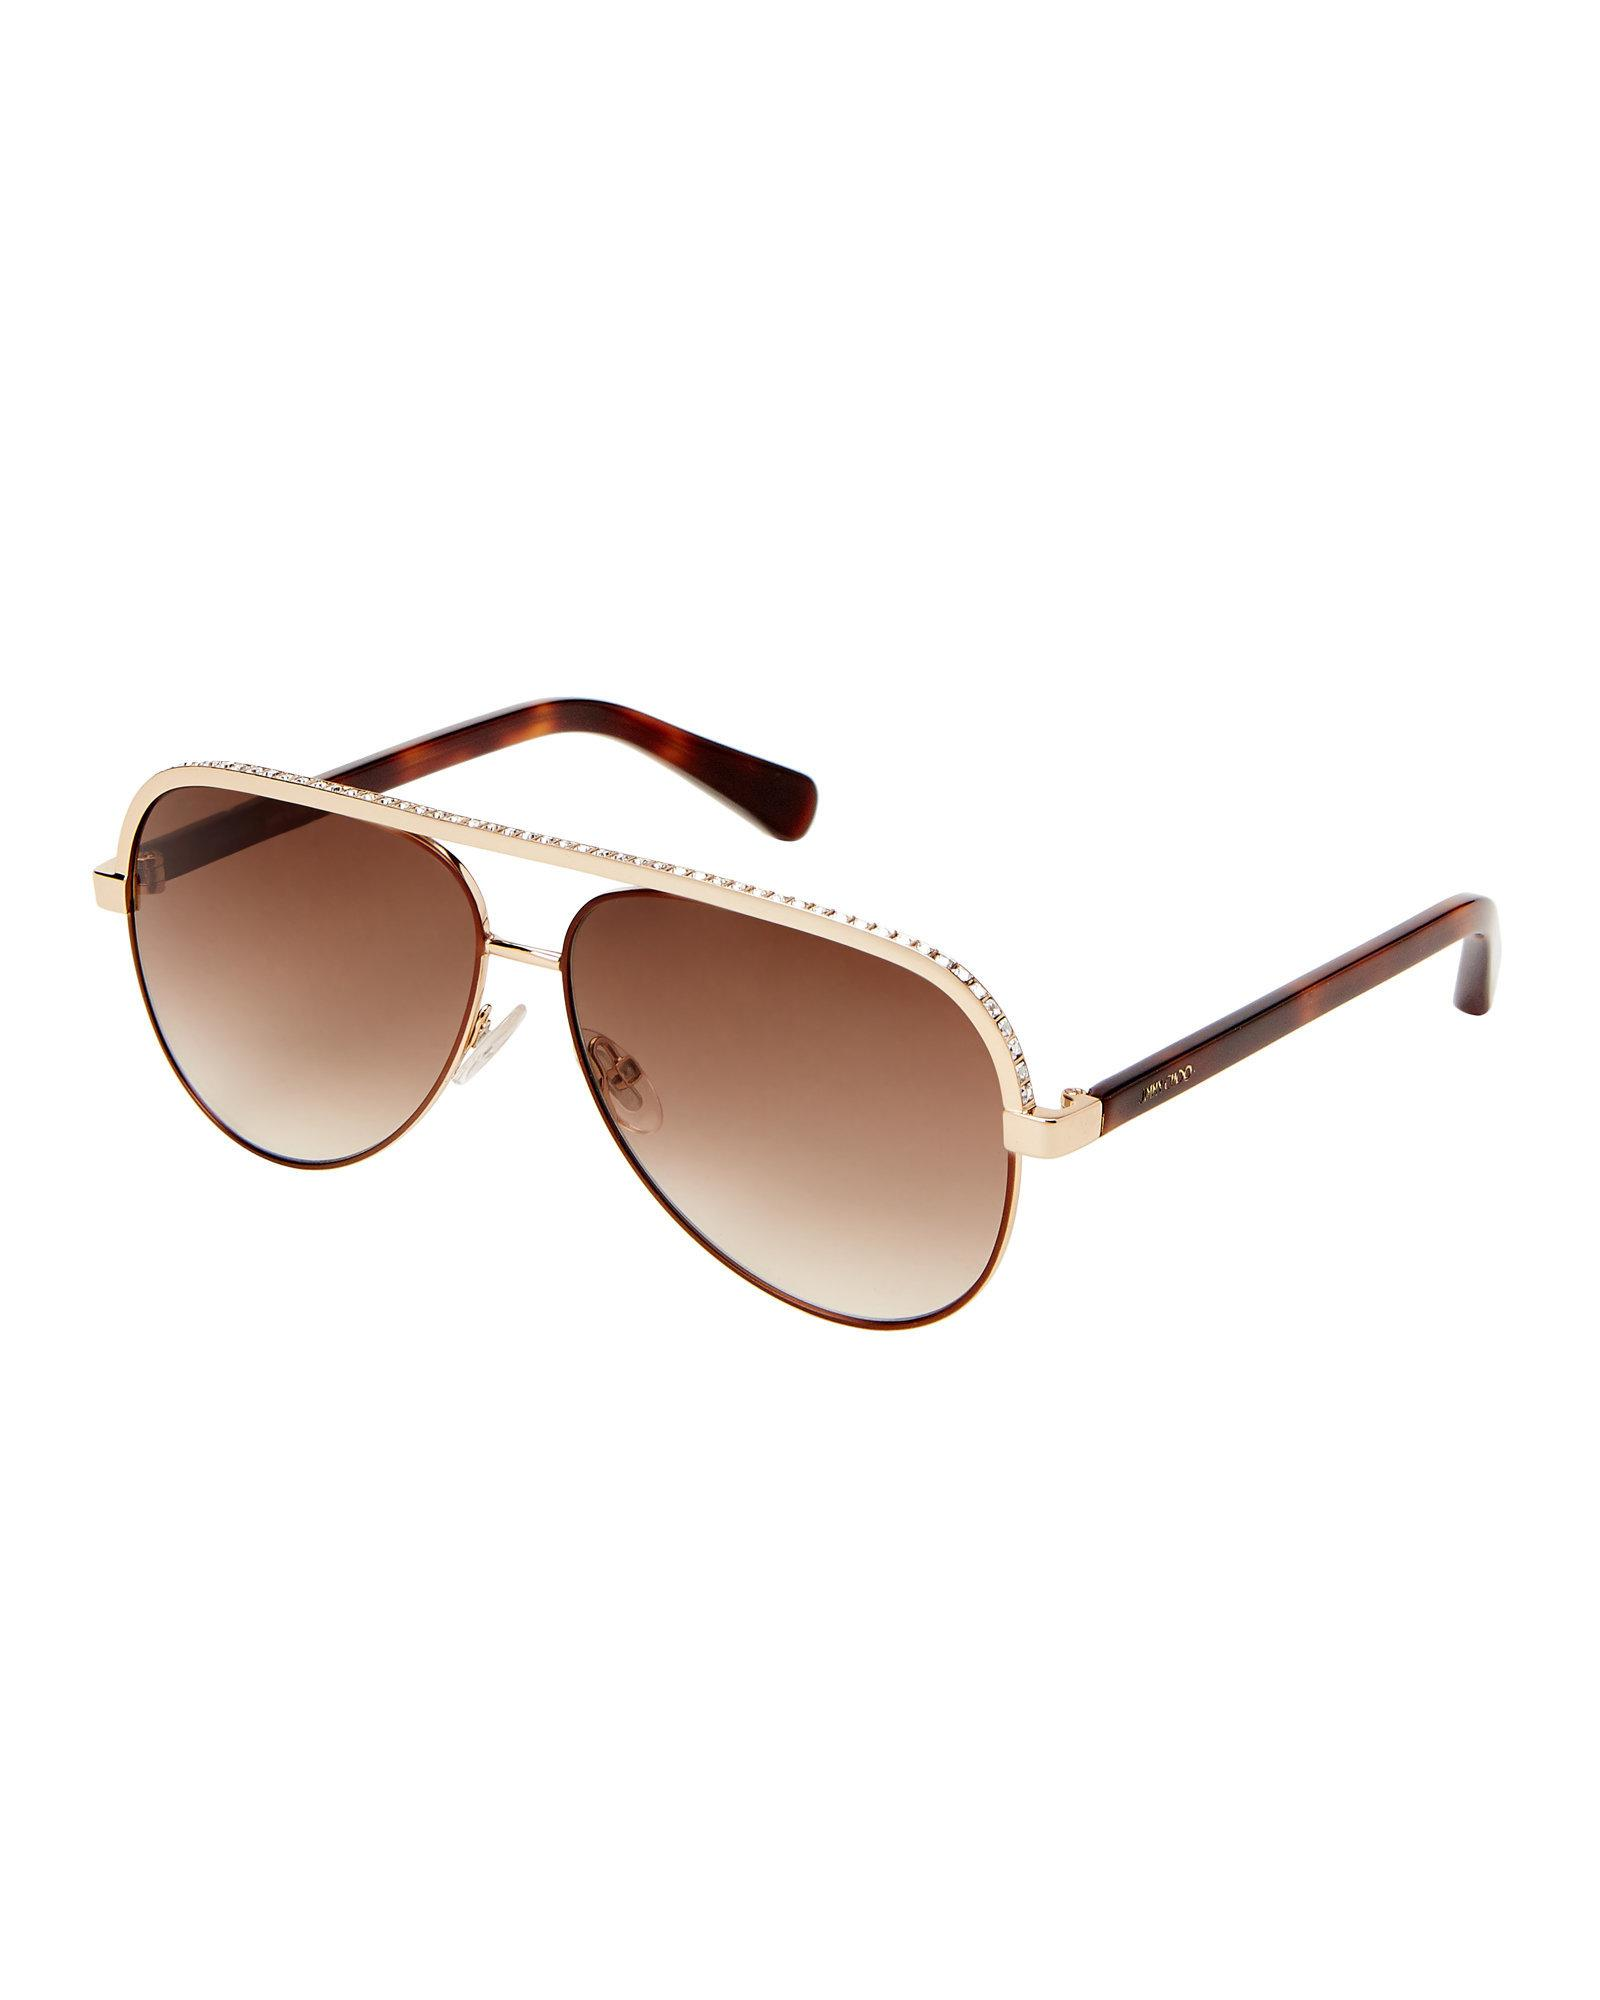 0efae49cedcb Lyst - Jimmy Choo Lina s Rhinestone Brow Aviator Sunglasses in Brown